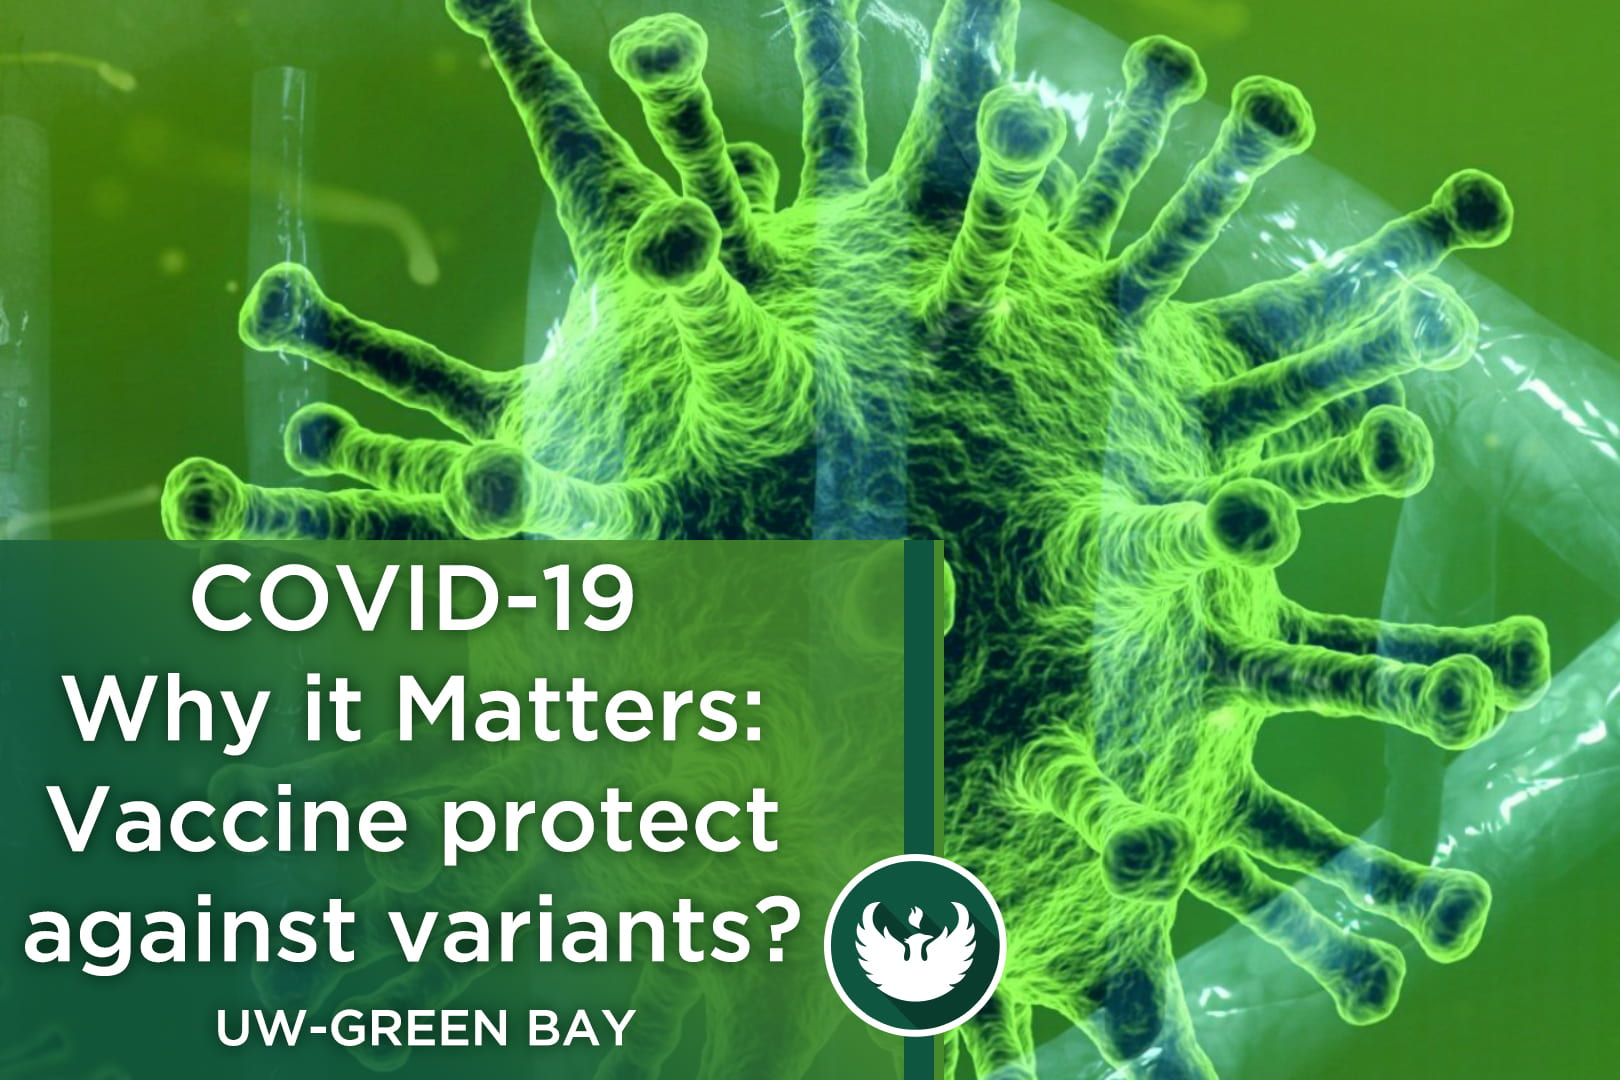 """Photo of covid-19 virus magnified under a microscope with the text, """"COVID-19 Why it Matters: Vaccine protect against variants?"""""""